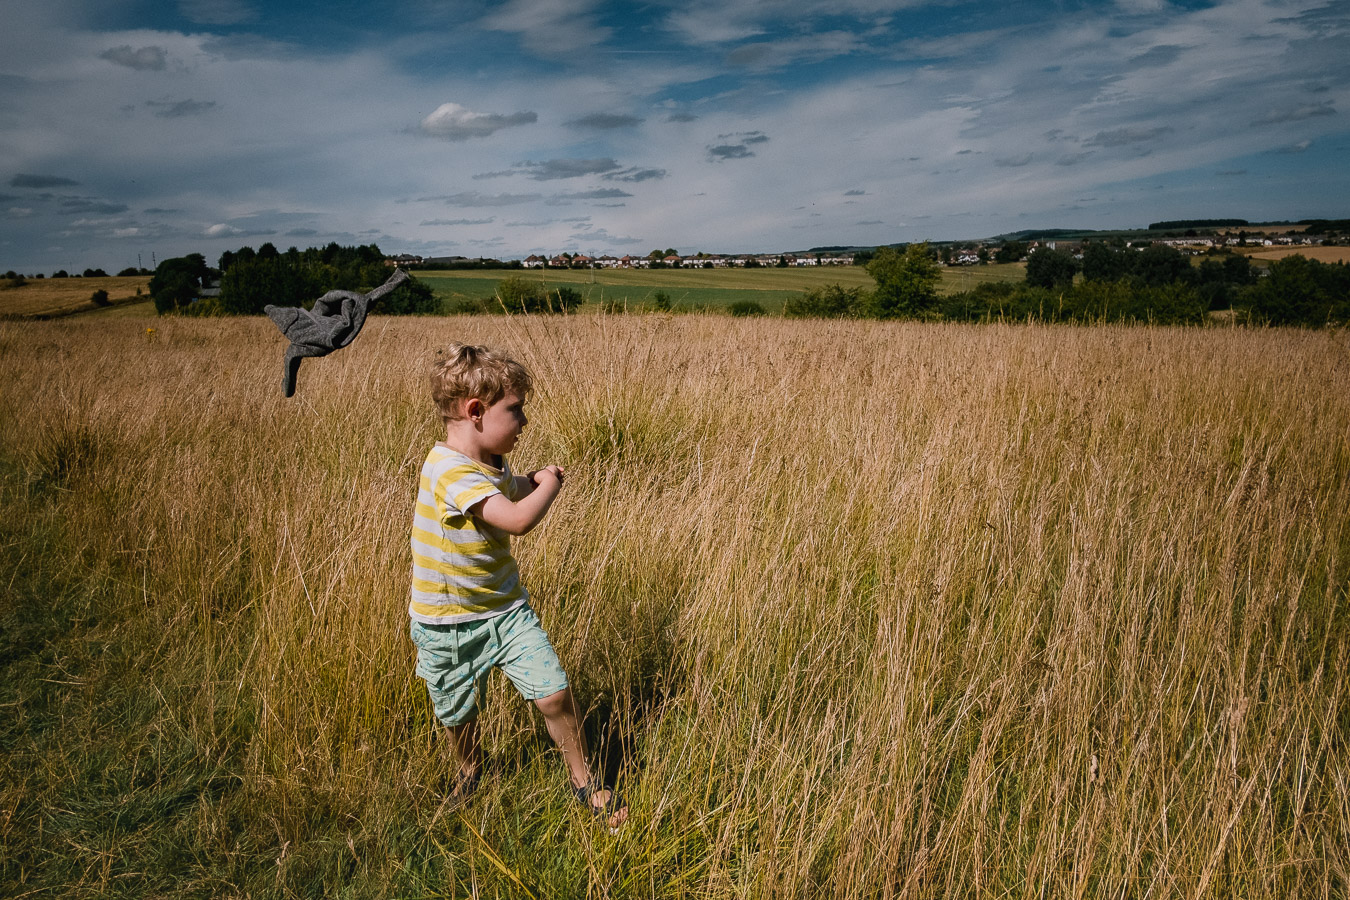 Boy throwing jacket in the air in a grassy field